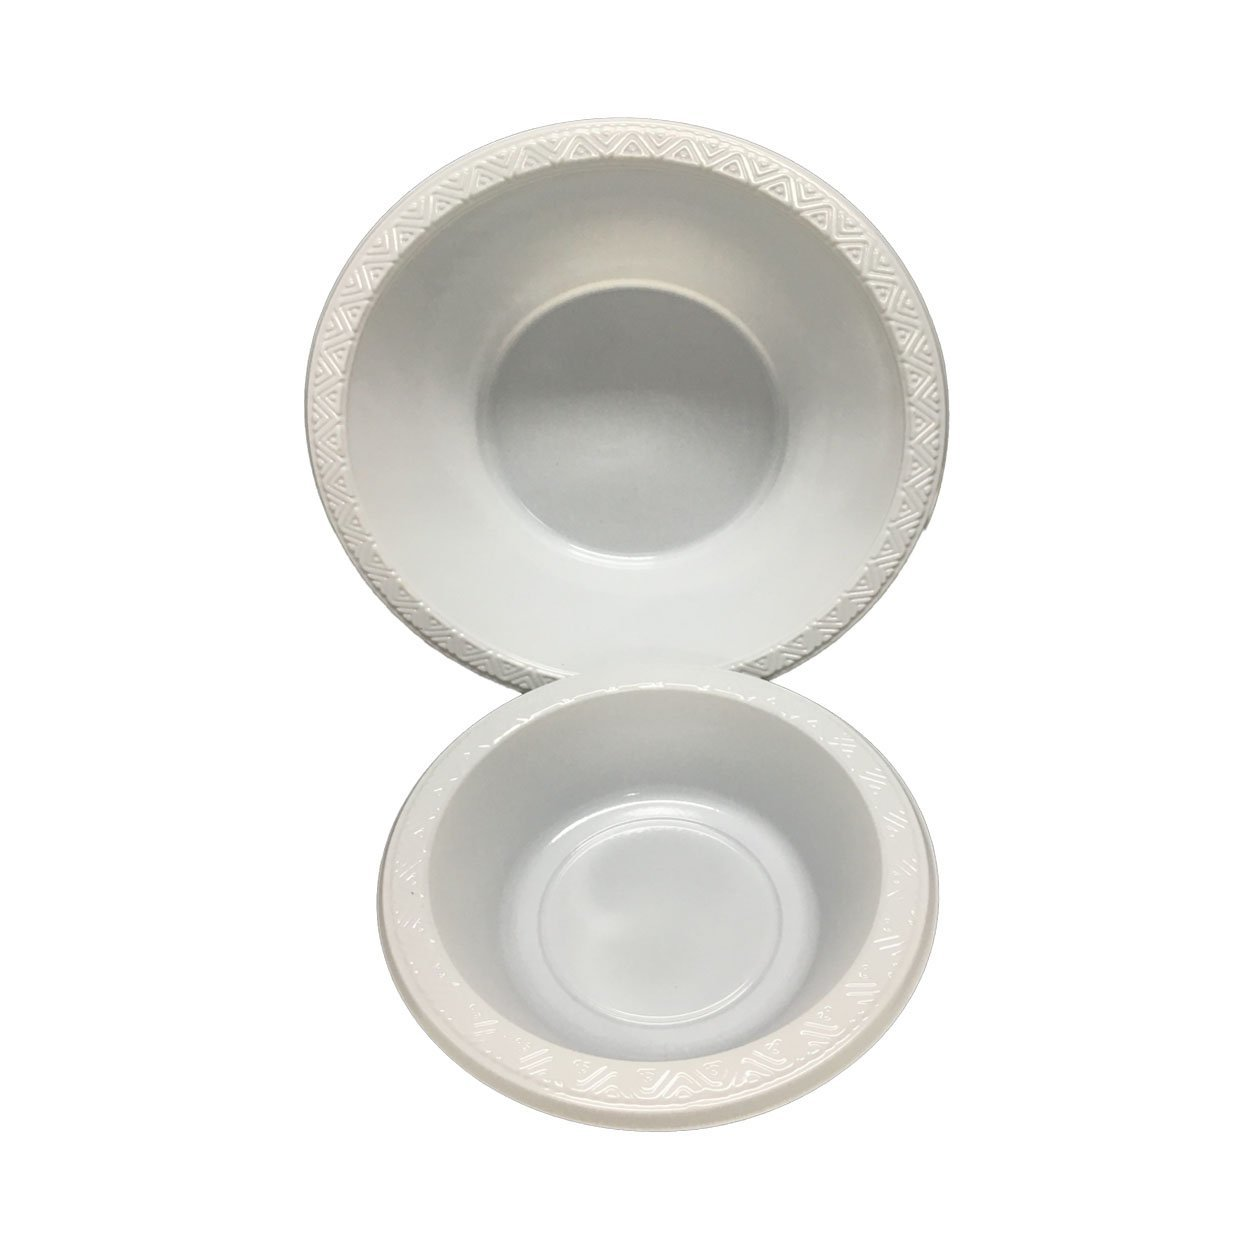 HENGDA Disposable Tableware 100% Food Grade PS White and Colorful Plastic Bowl Disposable Plastic Bowl image1